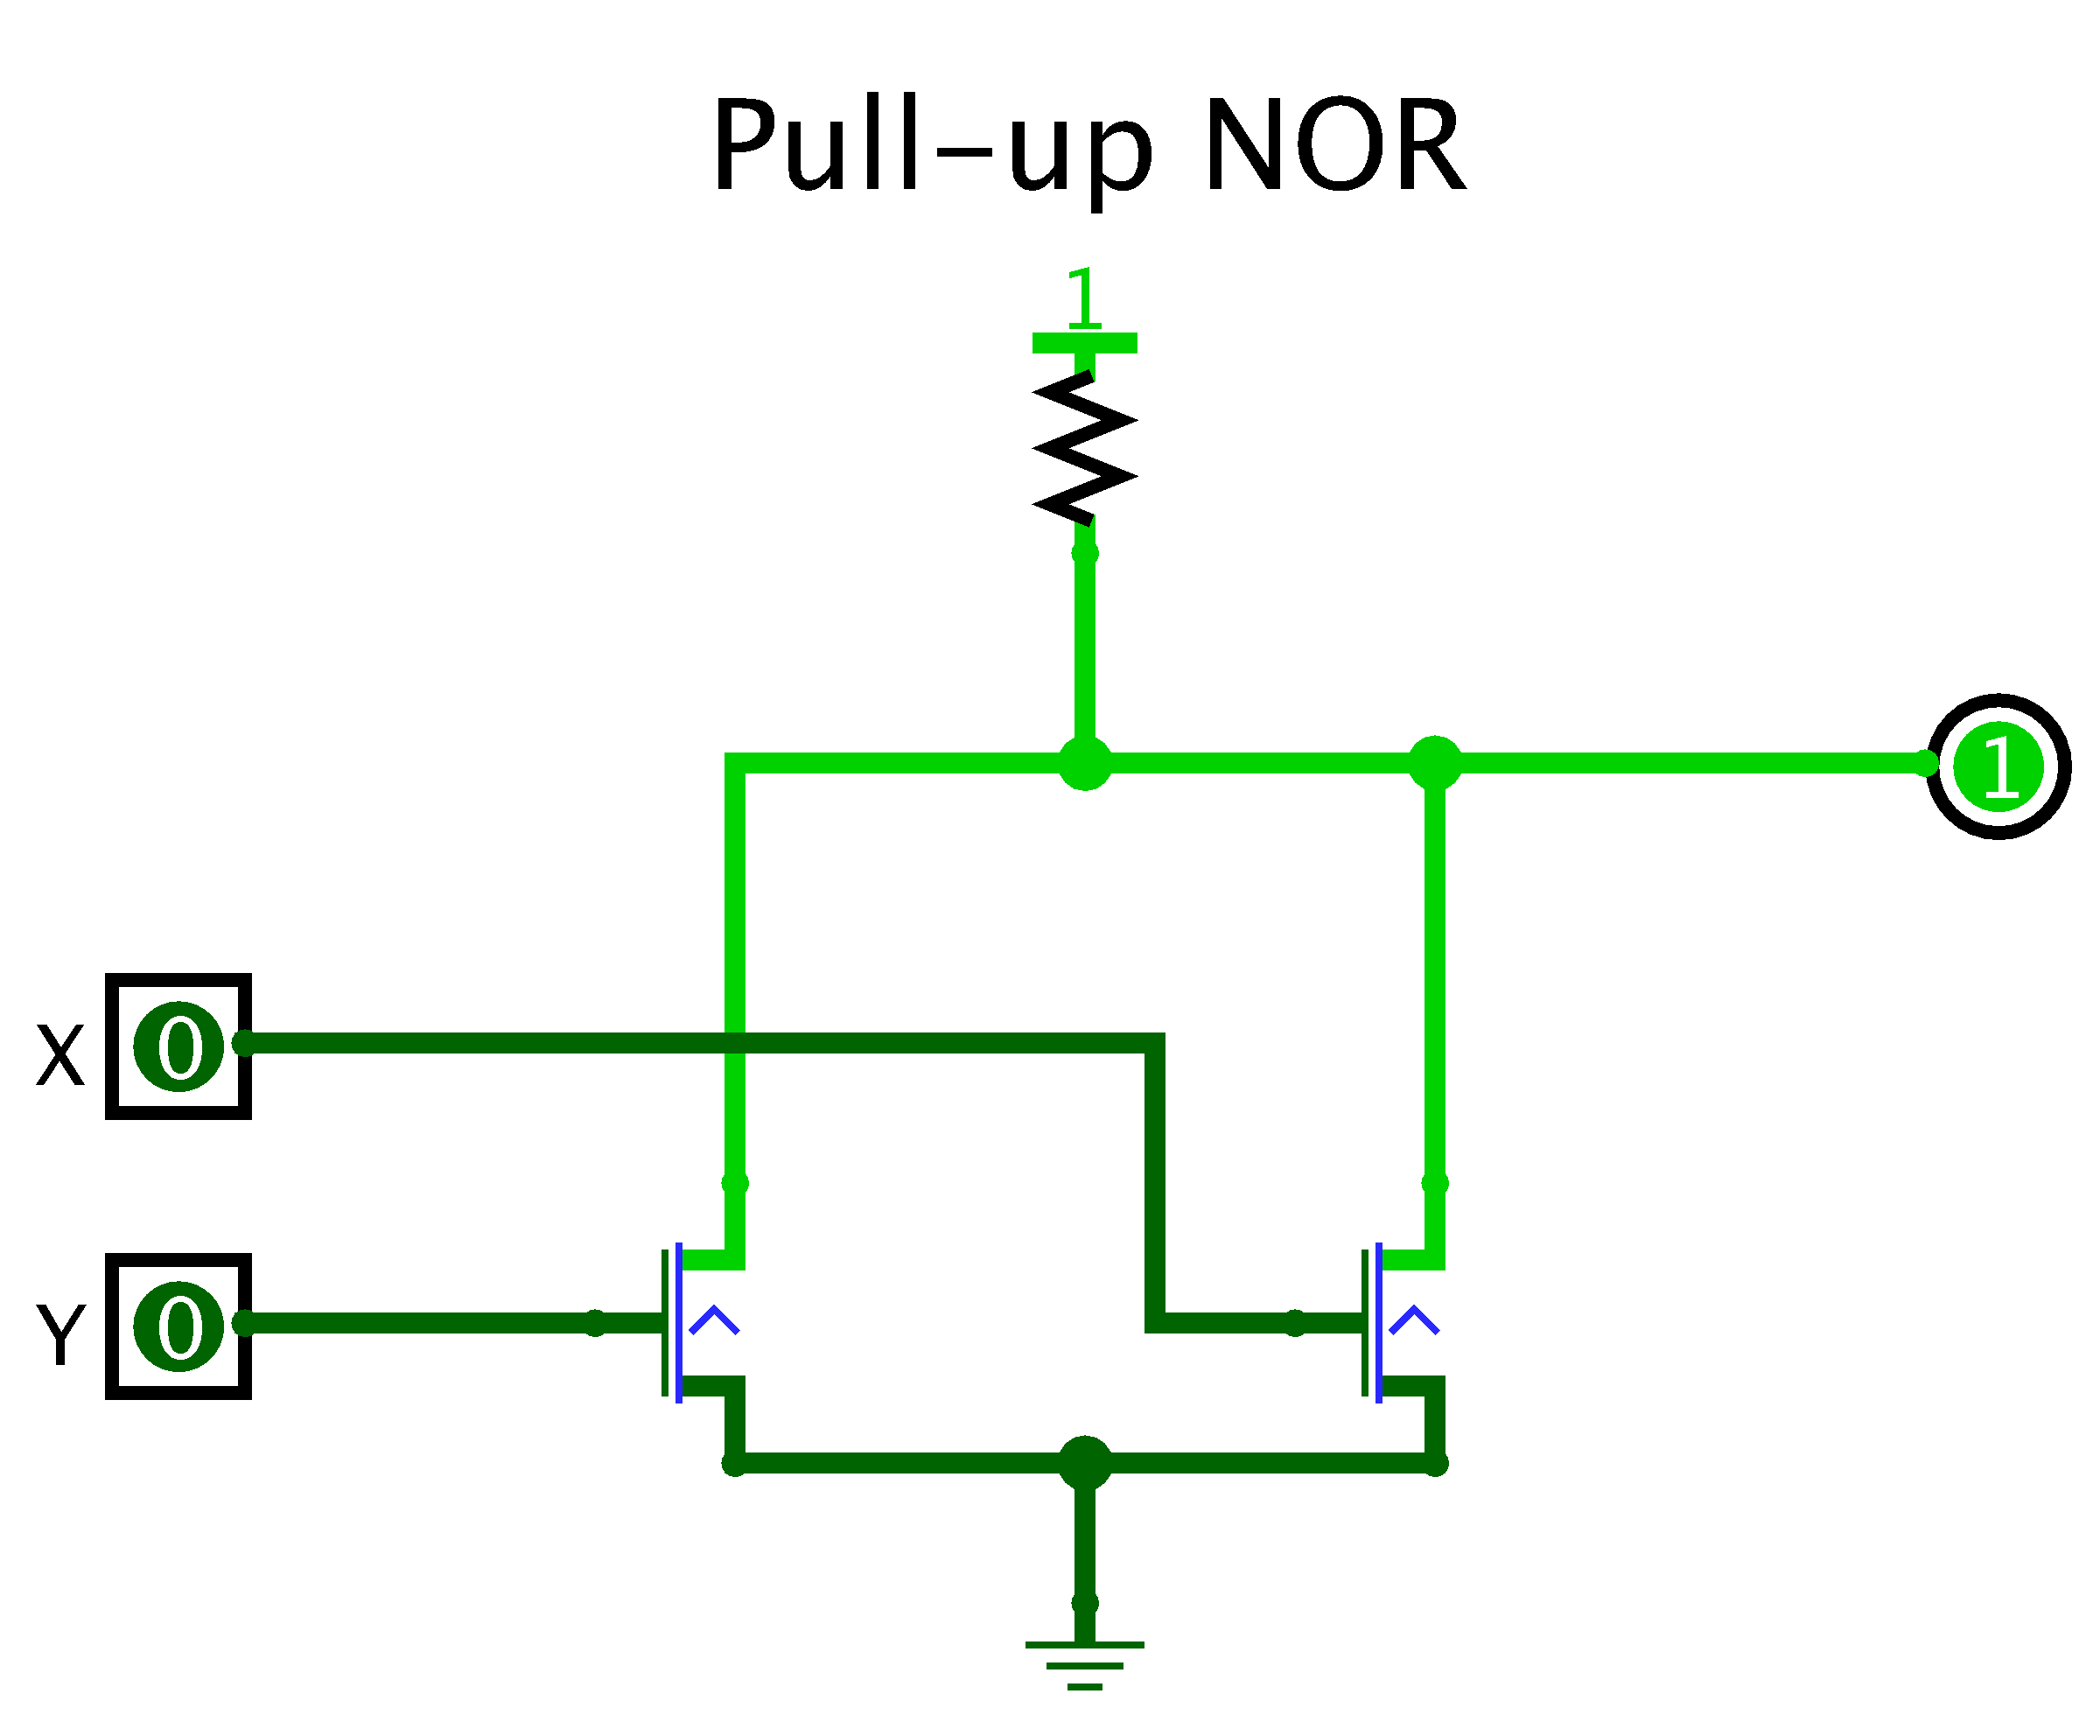 Csci 255 Building Logic Gates From Transistors Circuits Related Keywords Suggestions Long Pull Up And Npn For Nor